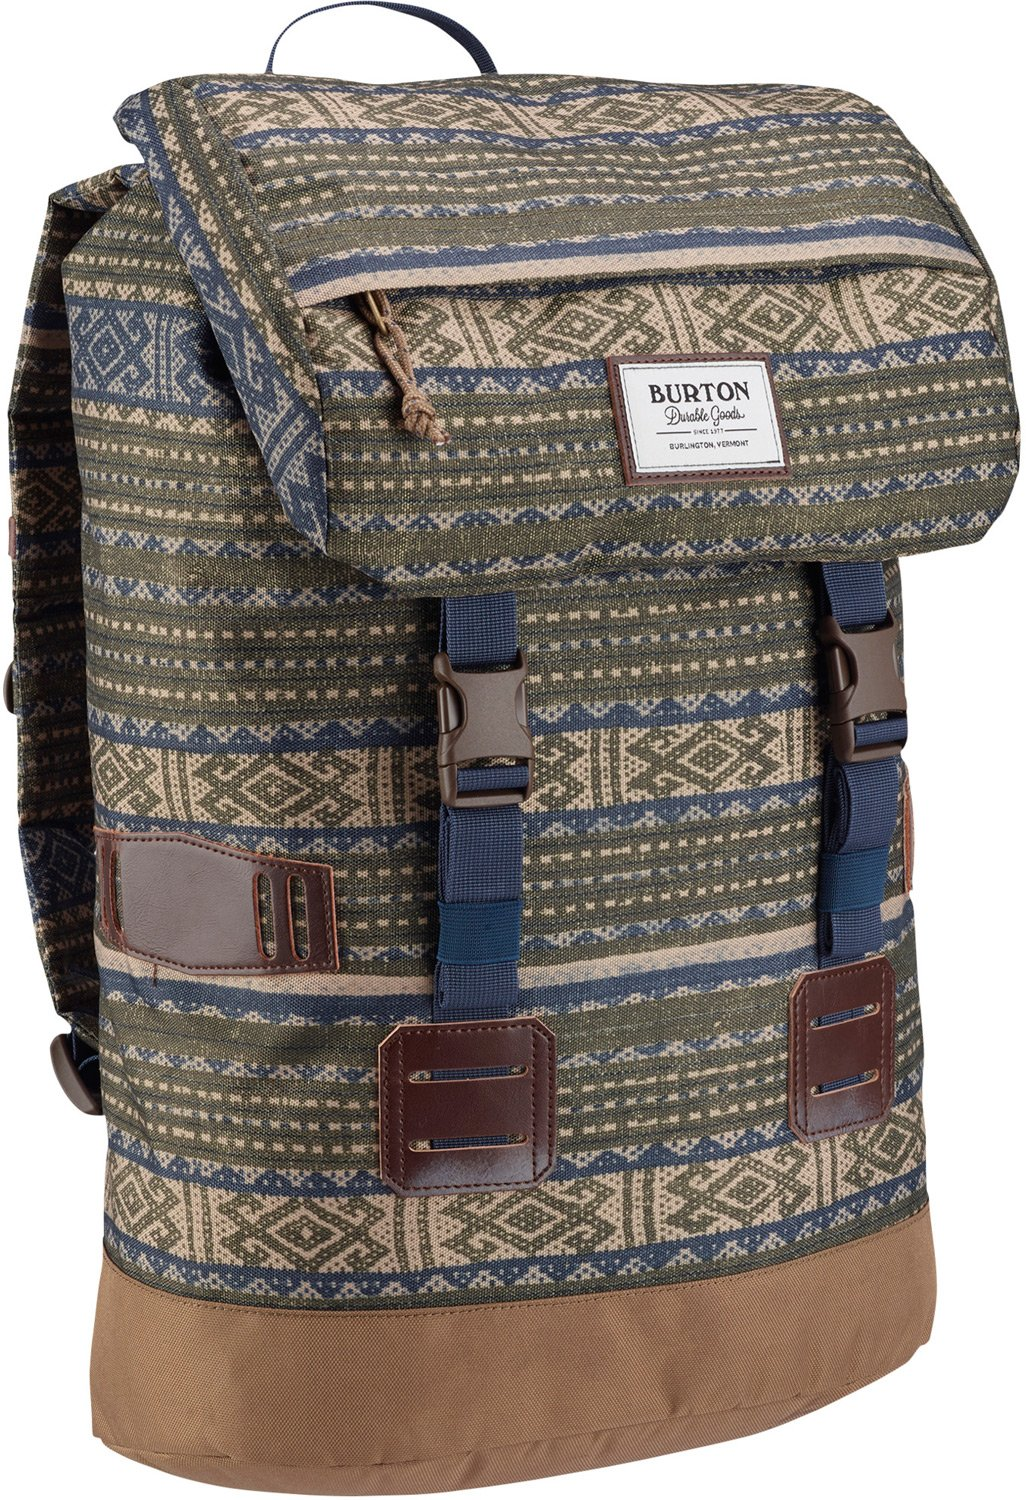 3988b0278b Galleon - Burton Tinder Backpack, Tanimbar Print